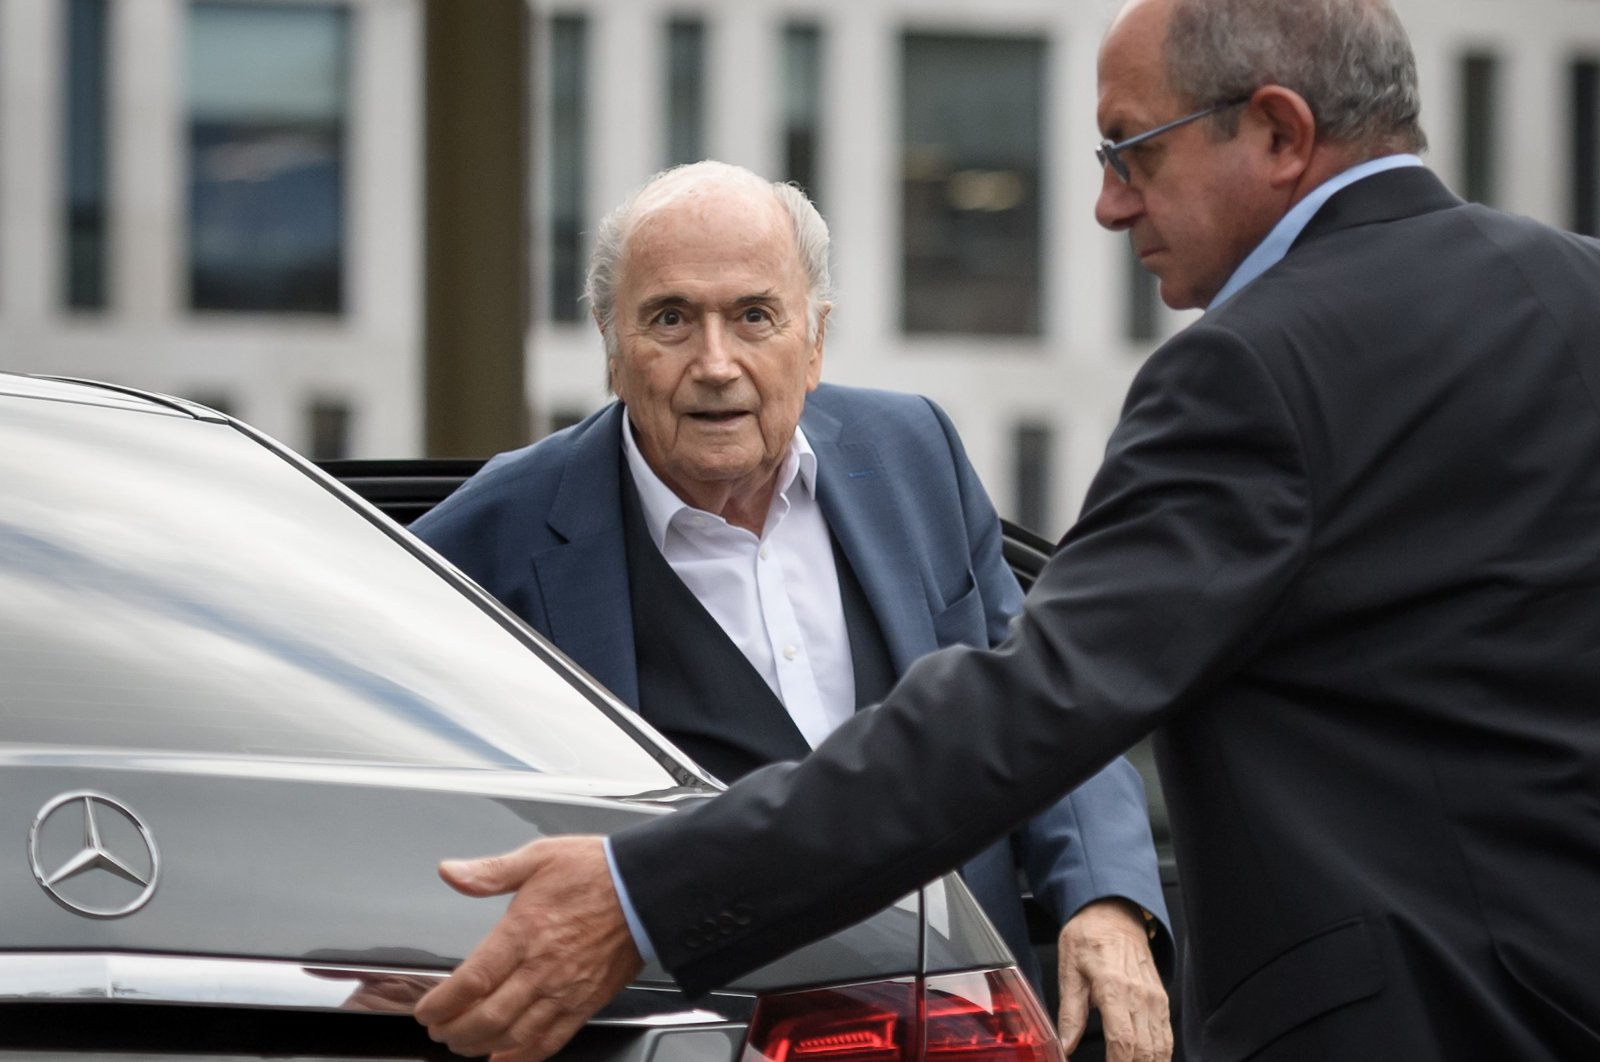 Former president of World football's governing body FIFA, Sepp Blatter (L) arrives at a hearing after being summoned by Swiss prosecutor Thomas Hildbrand, Bern, Switzerland, Sept. 1, 2020. (AFP Photo)